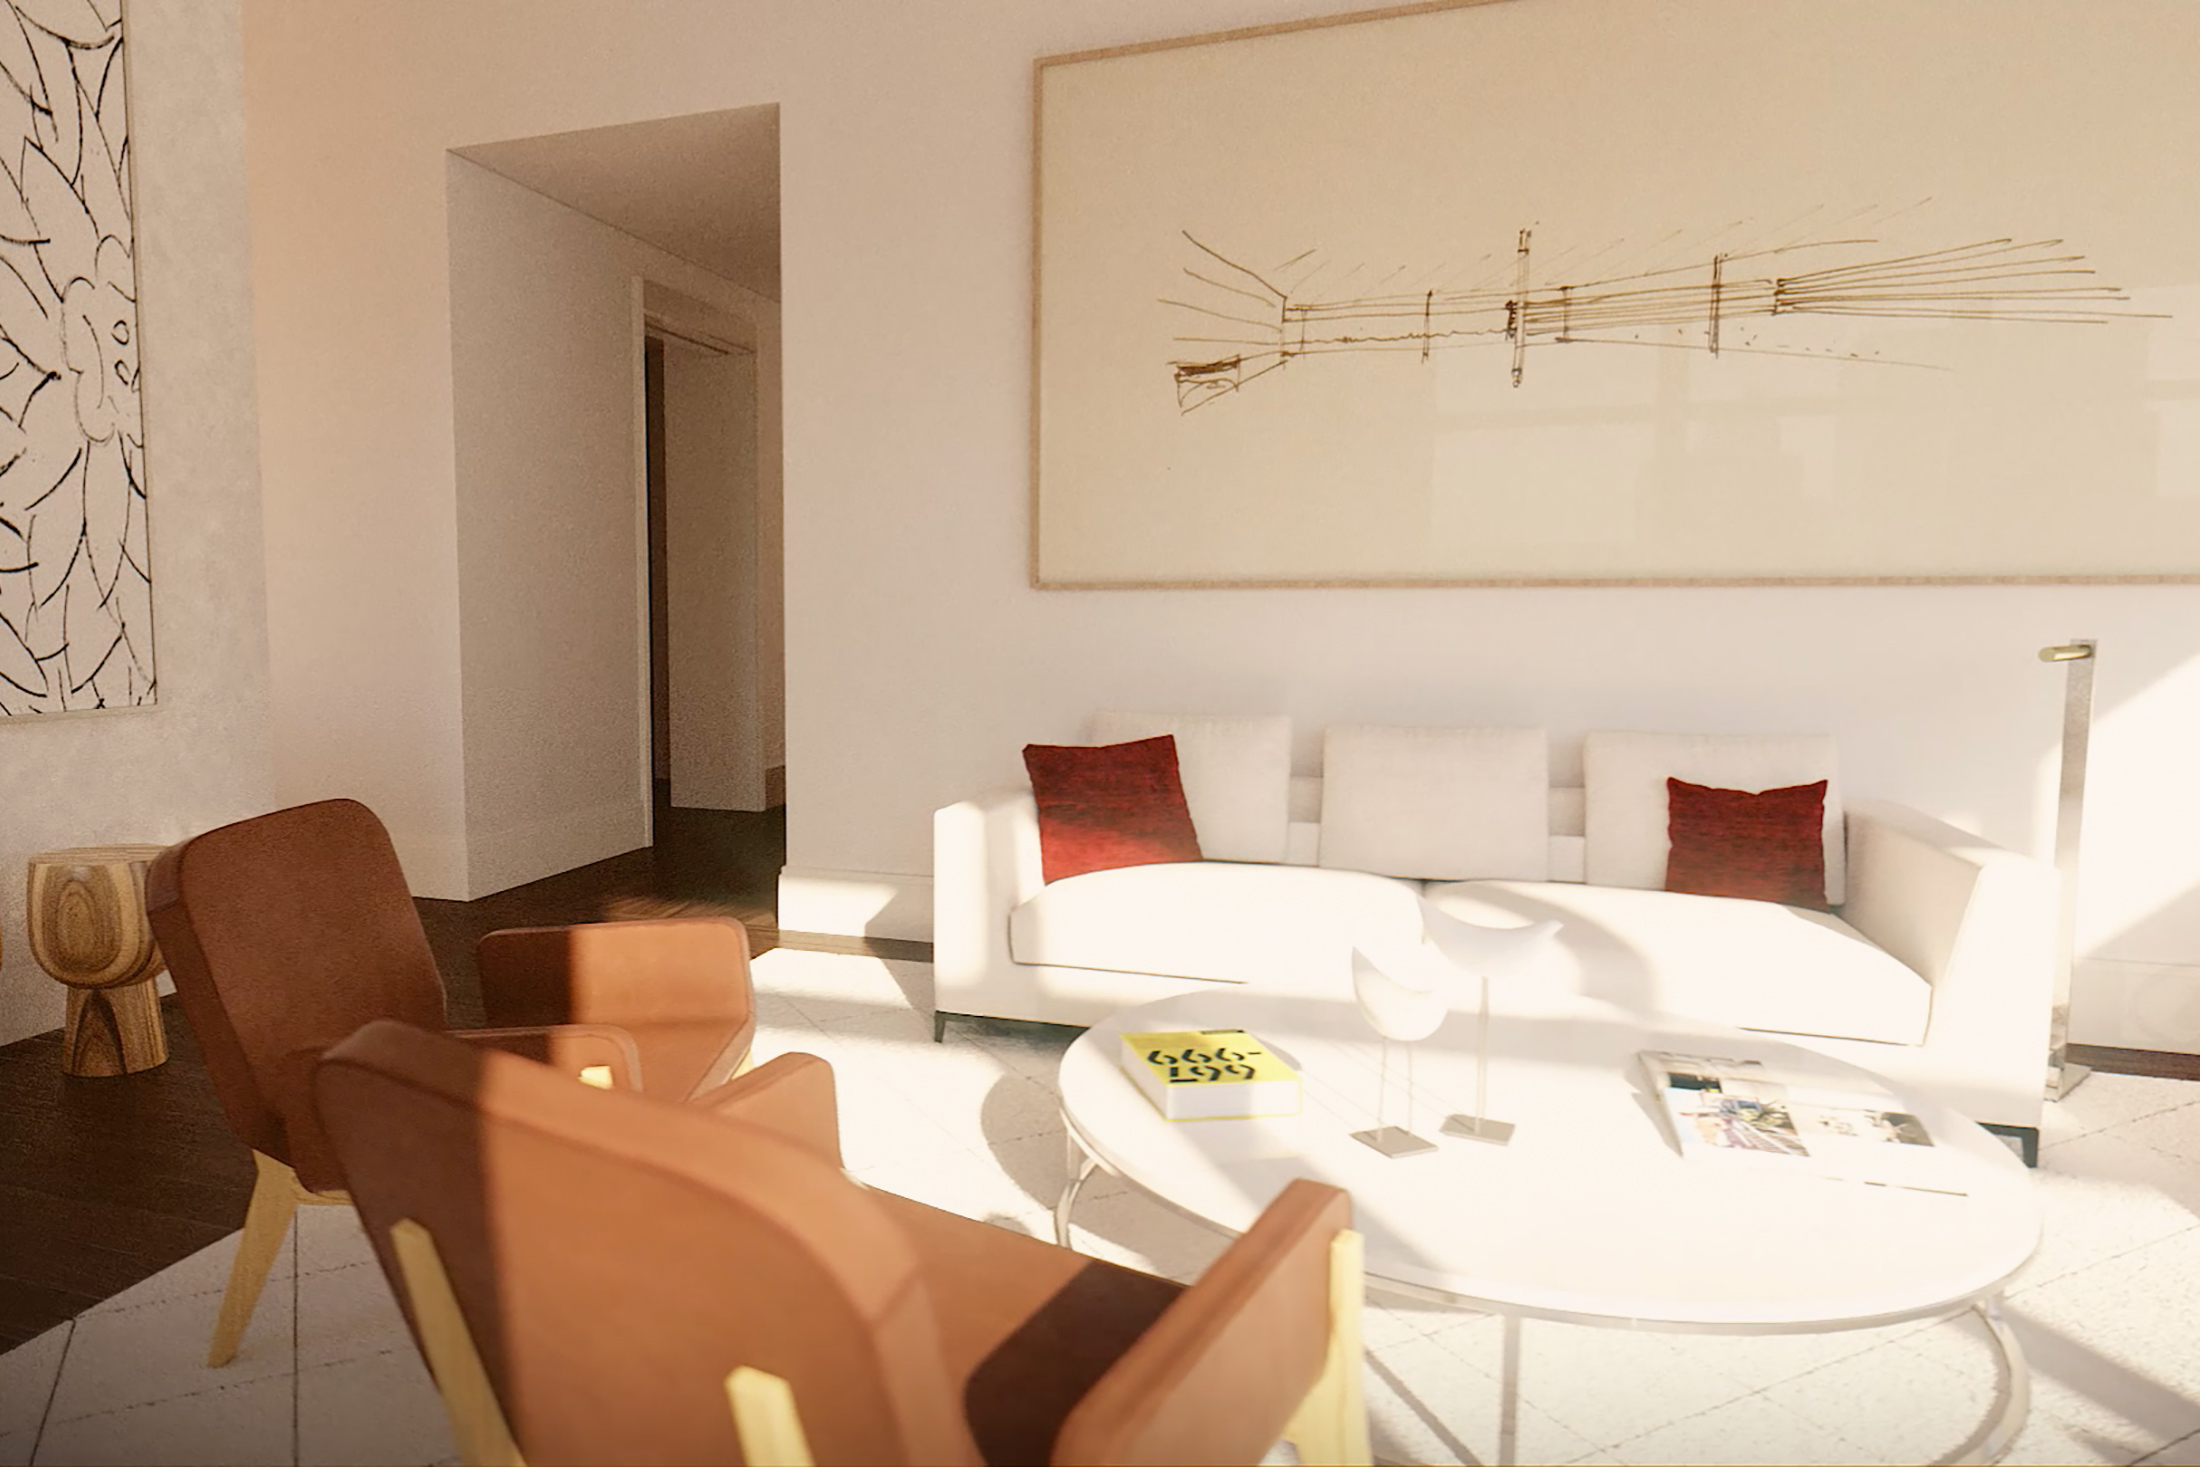 Architectural Rendering of the exterior of the 301 East 50th Street project located in Midtown, New York City